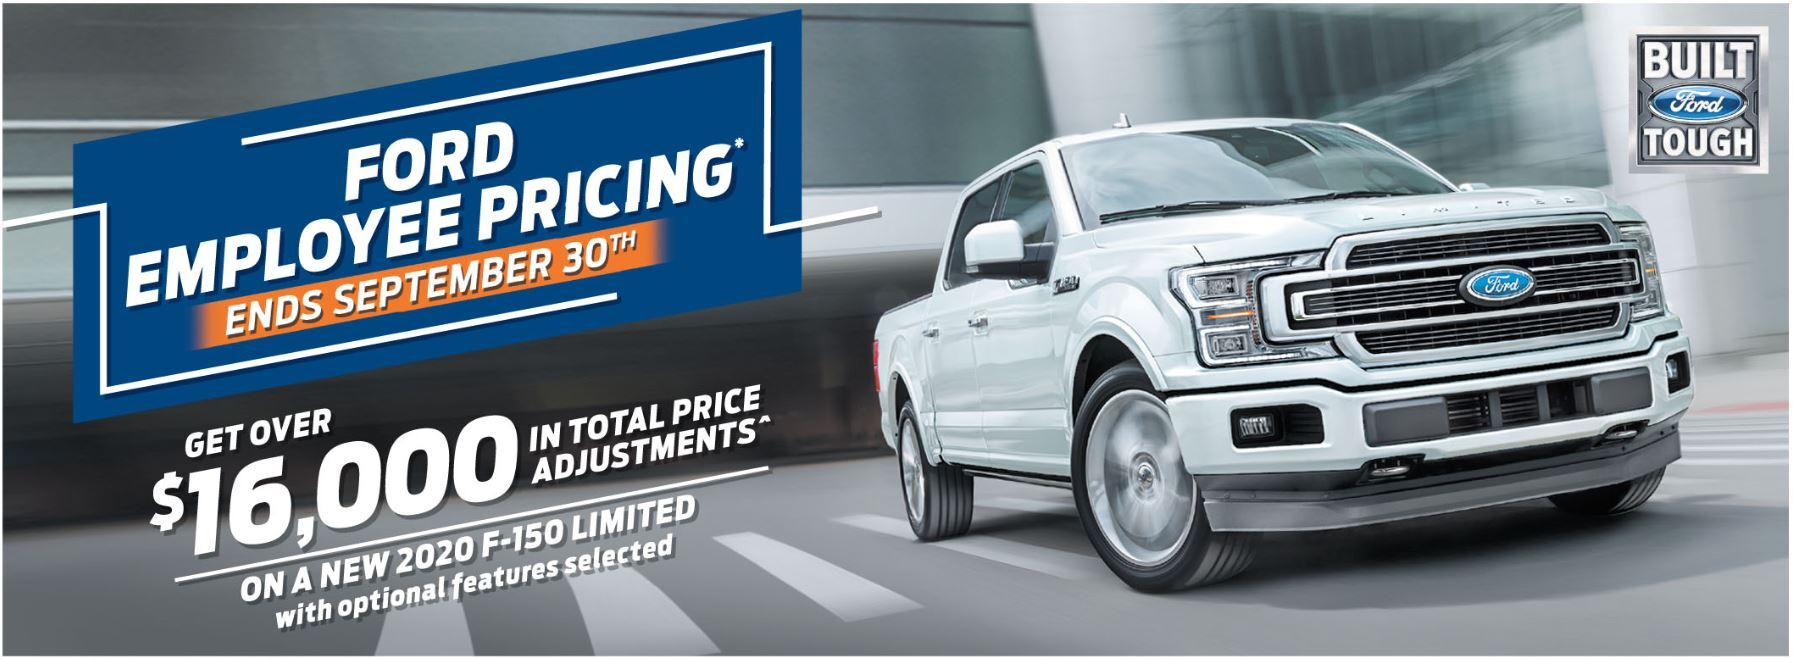 Ford Employee Pricing on F-150